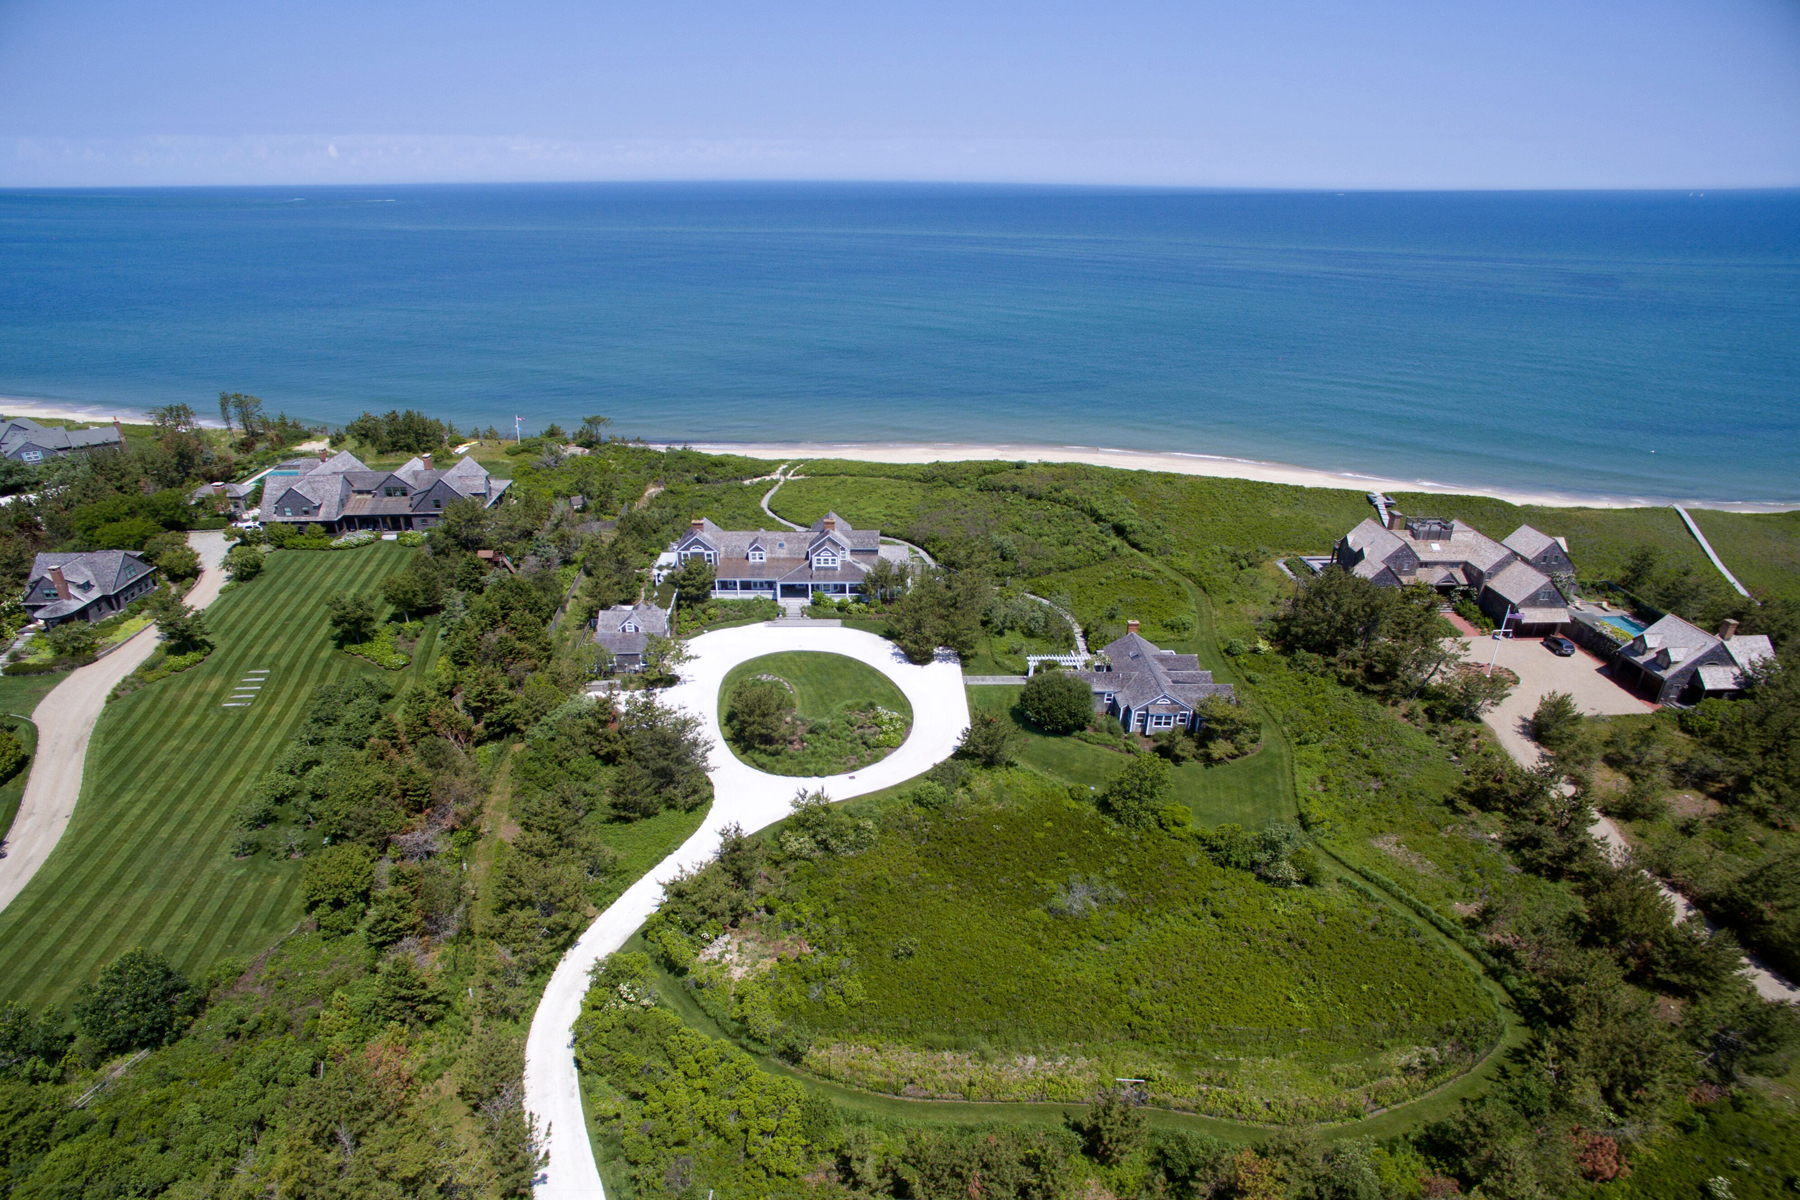 Moradia para Venda às Spectacular Oceanfront Dionis! 119 Eel Point Road 119 R Eel Point Road Nantucket, Massachusetts, 02554 Estados Unidos